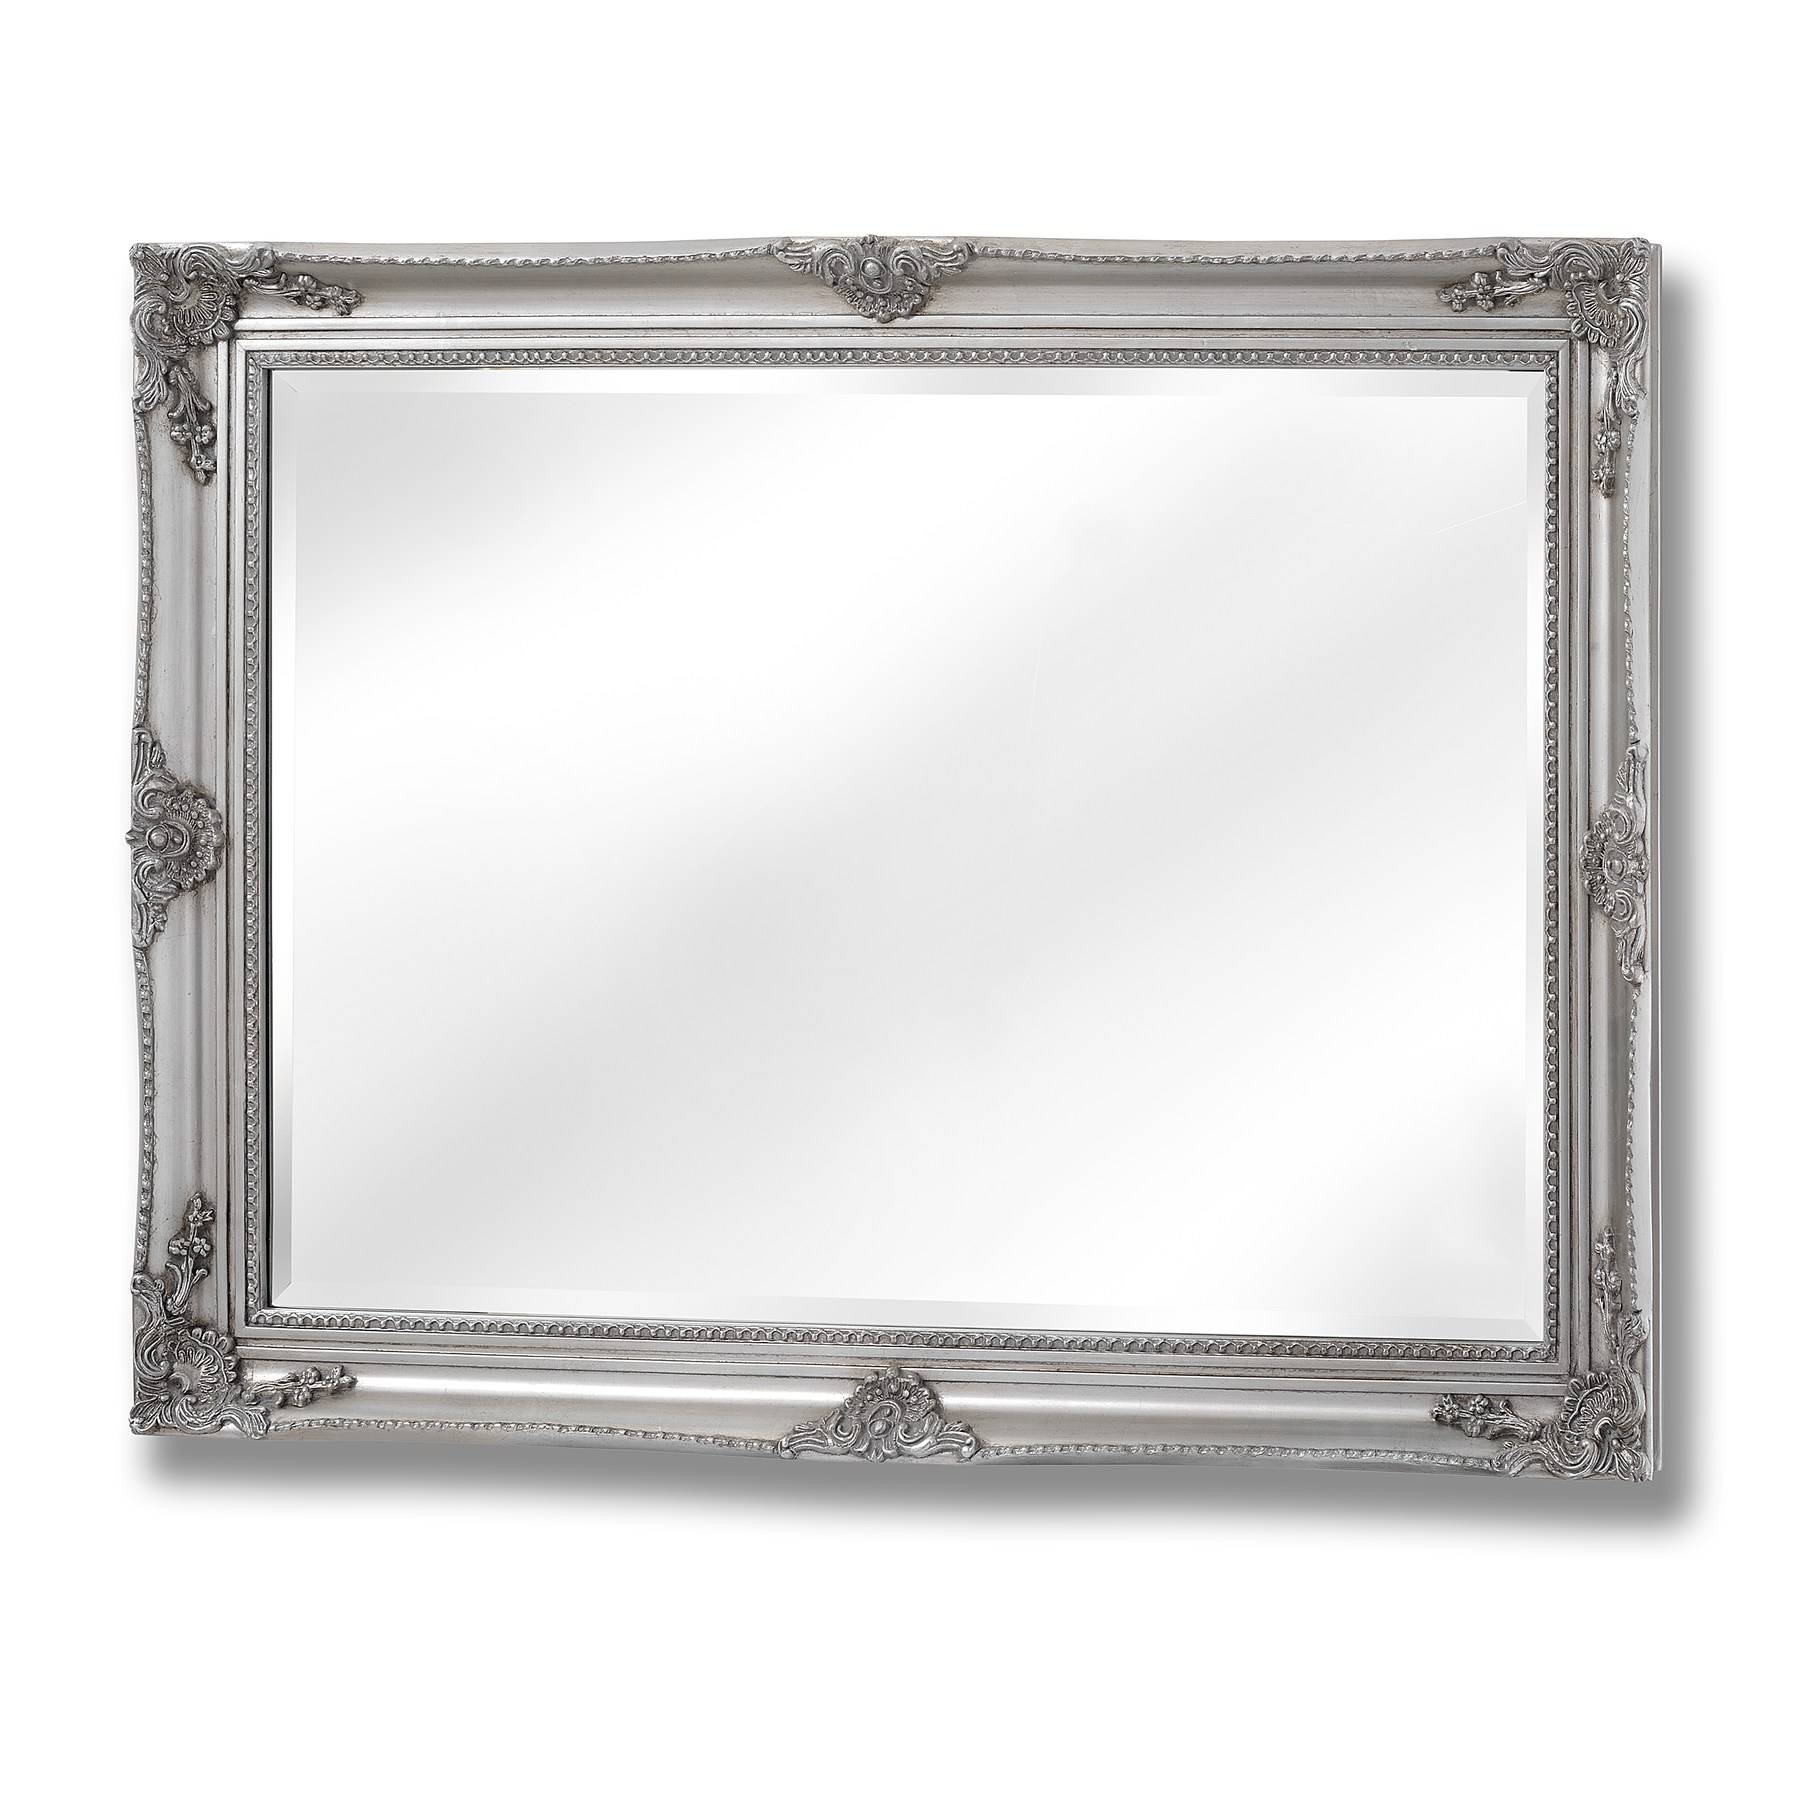 Baroque Style Large Silver Wall Mirror | Happy Home Interiors Regarding Baroque Style Mirrors (View 7 of 25)